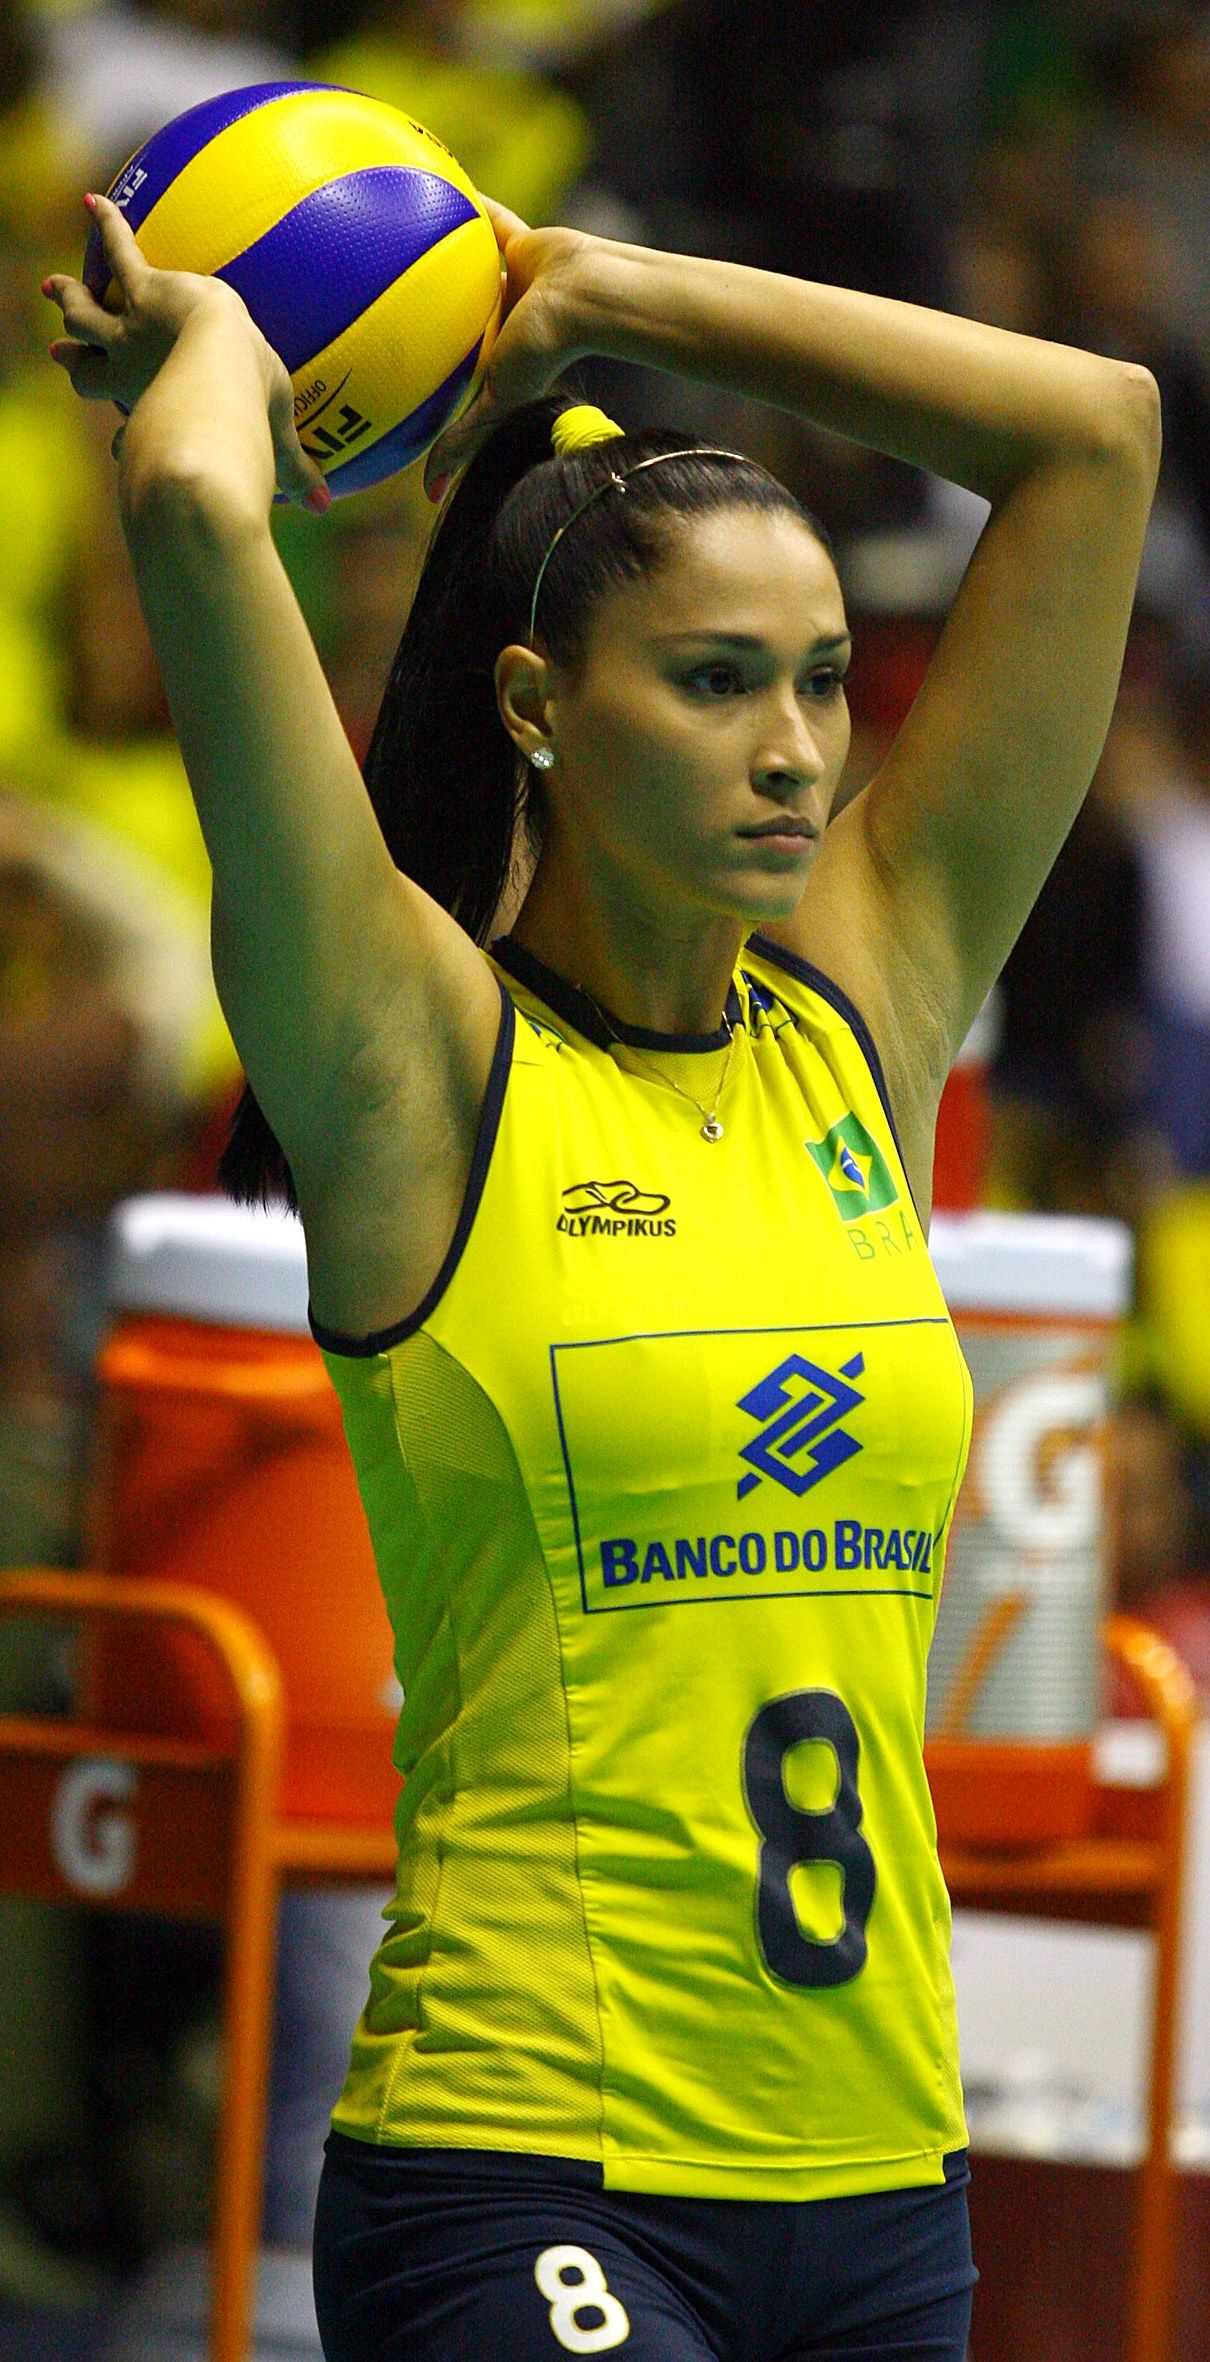 Jaqueline Maria Pereira De Carvalho Endres Brazilian Volleyball Player Volleyball Femenino Voley Atleta